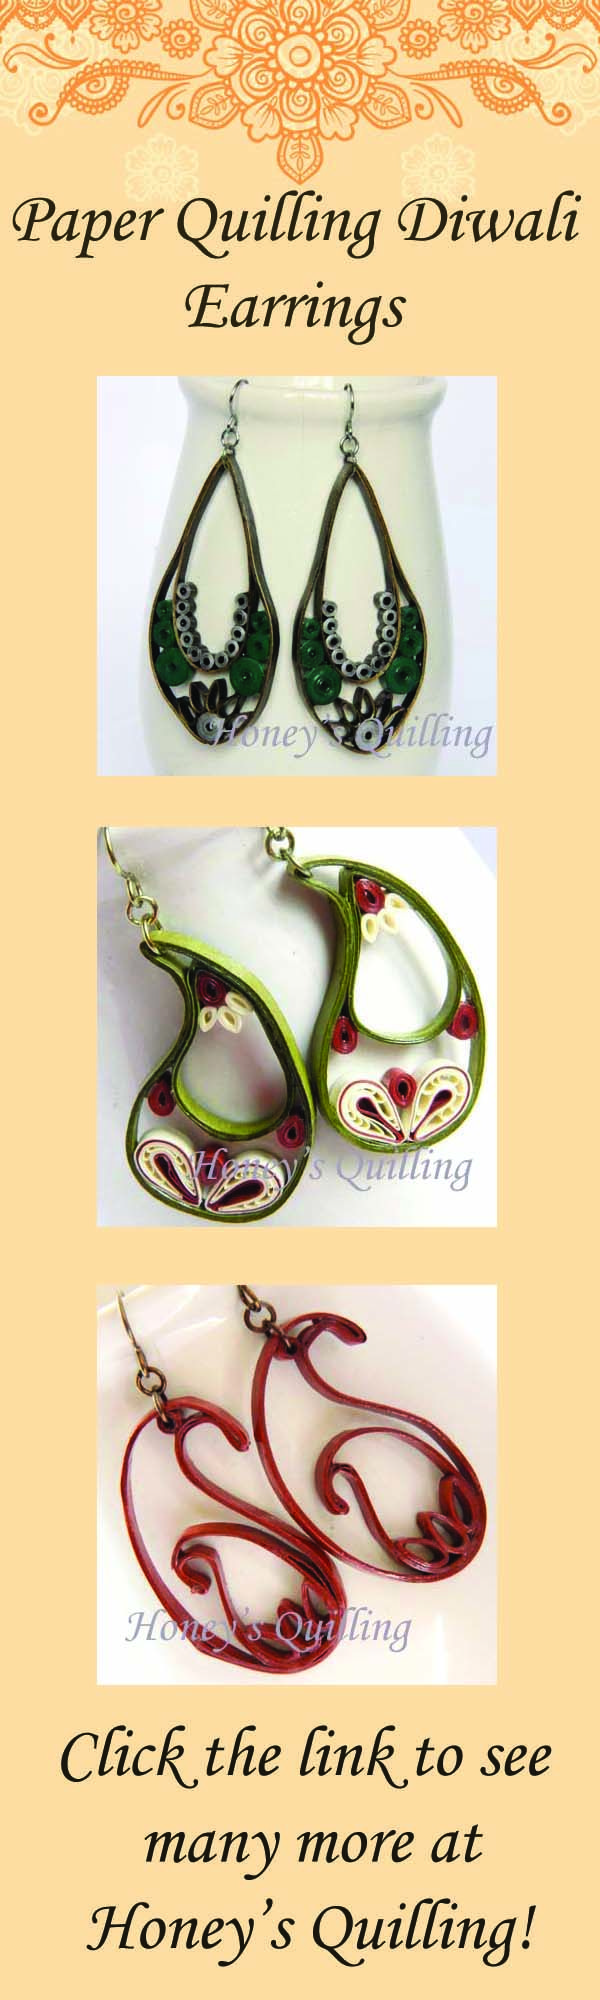 Click to view a great collection of Indian inspired paper quilling earrings, perfect for Diwali! - Honey's Quilling